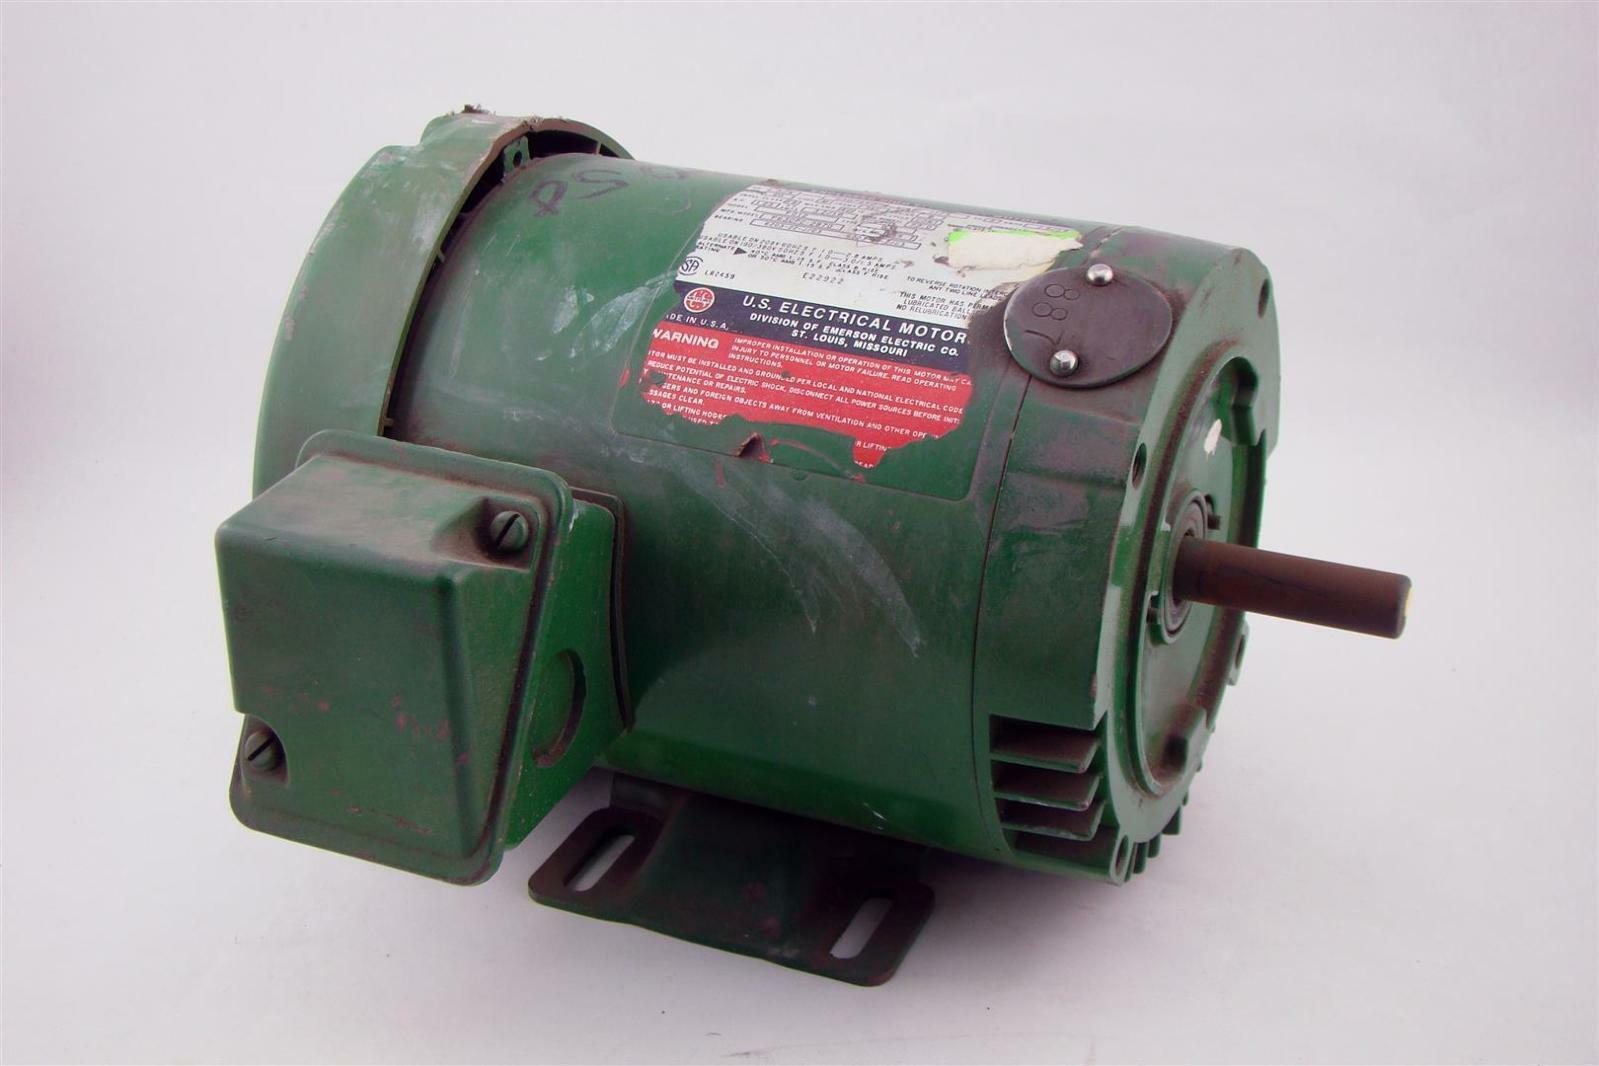 Us electrical motor 34hp 230460v 1775rpm 3ph 2814amps p63cpc us electrical motor 34hp 230460v 1775rpm 3ph 2814amps p63cpc publicscrutiny Image collections